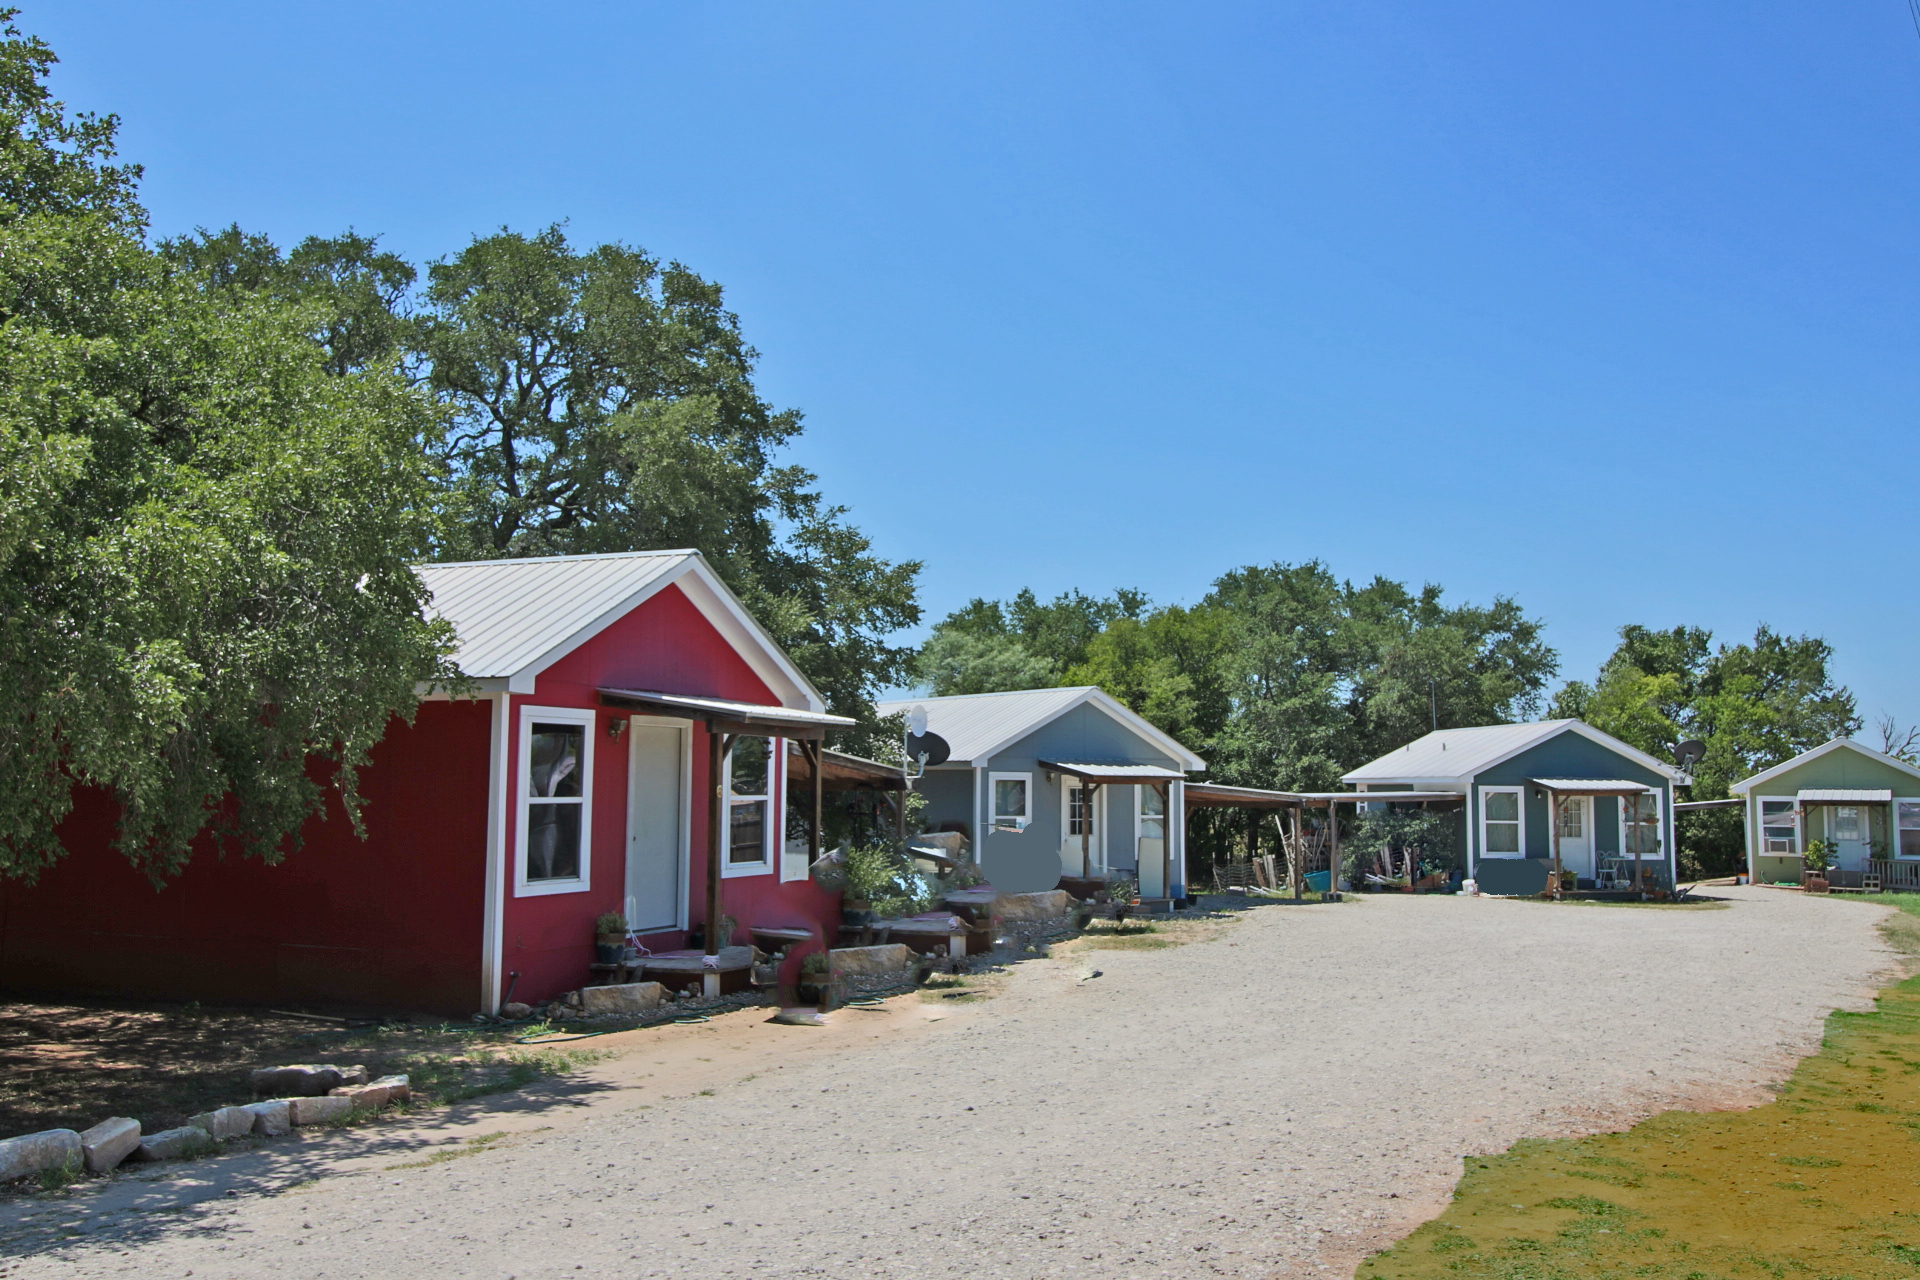 4323 Highway 16 Rental Cabins Location Map